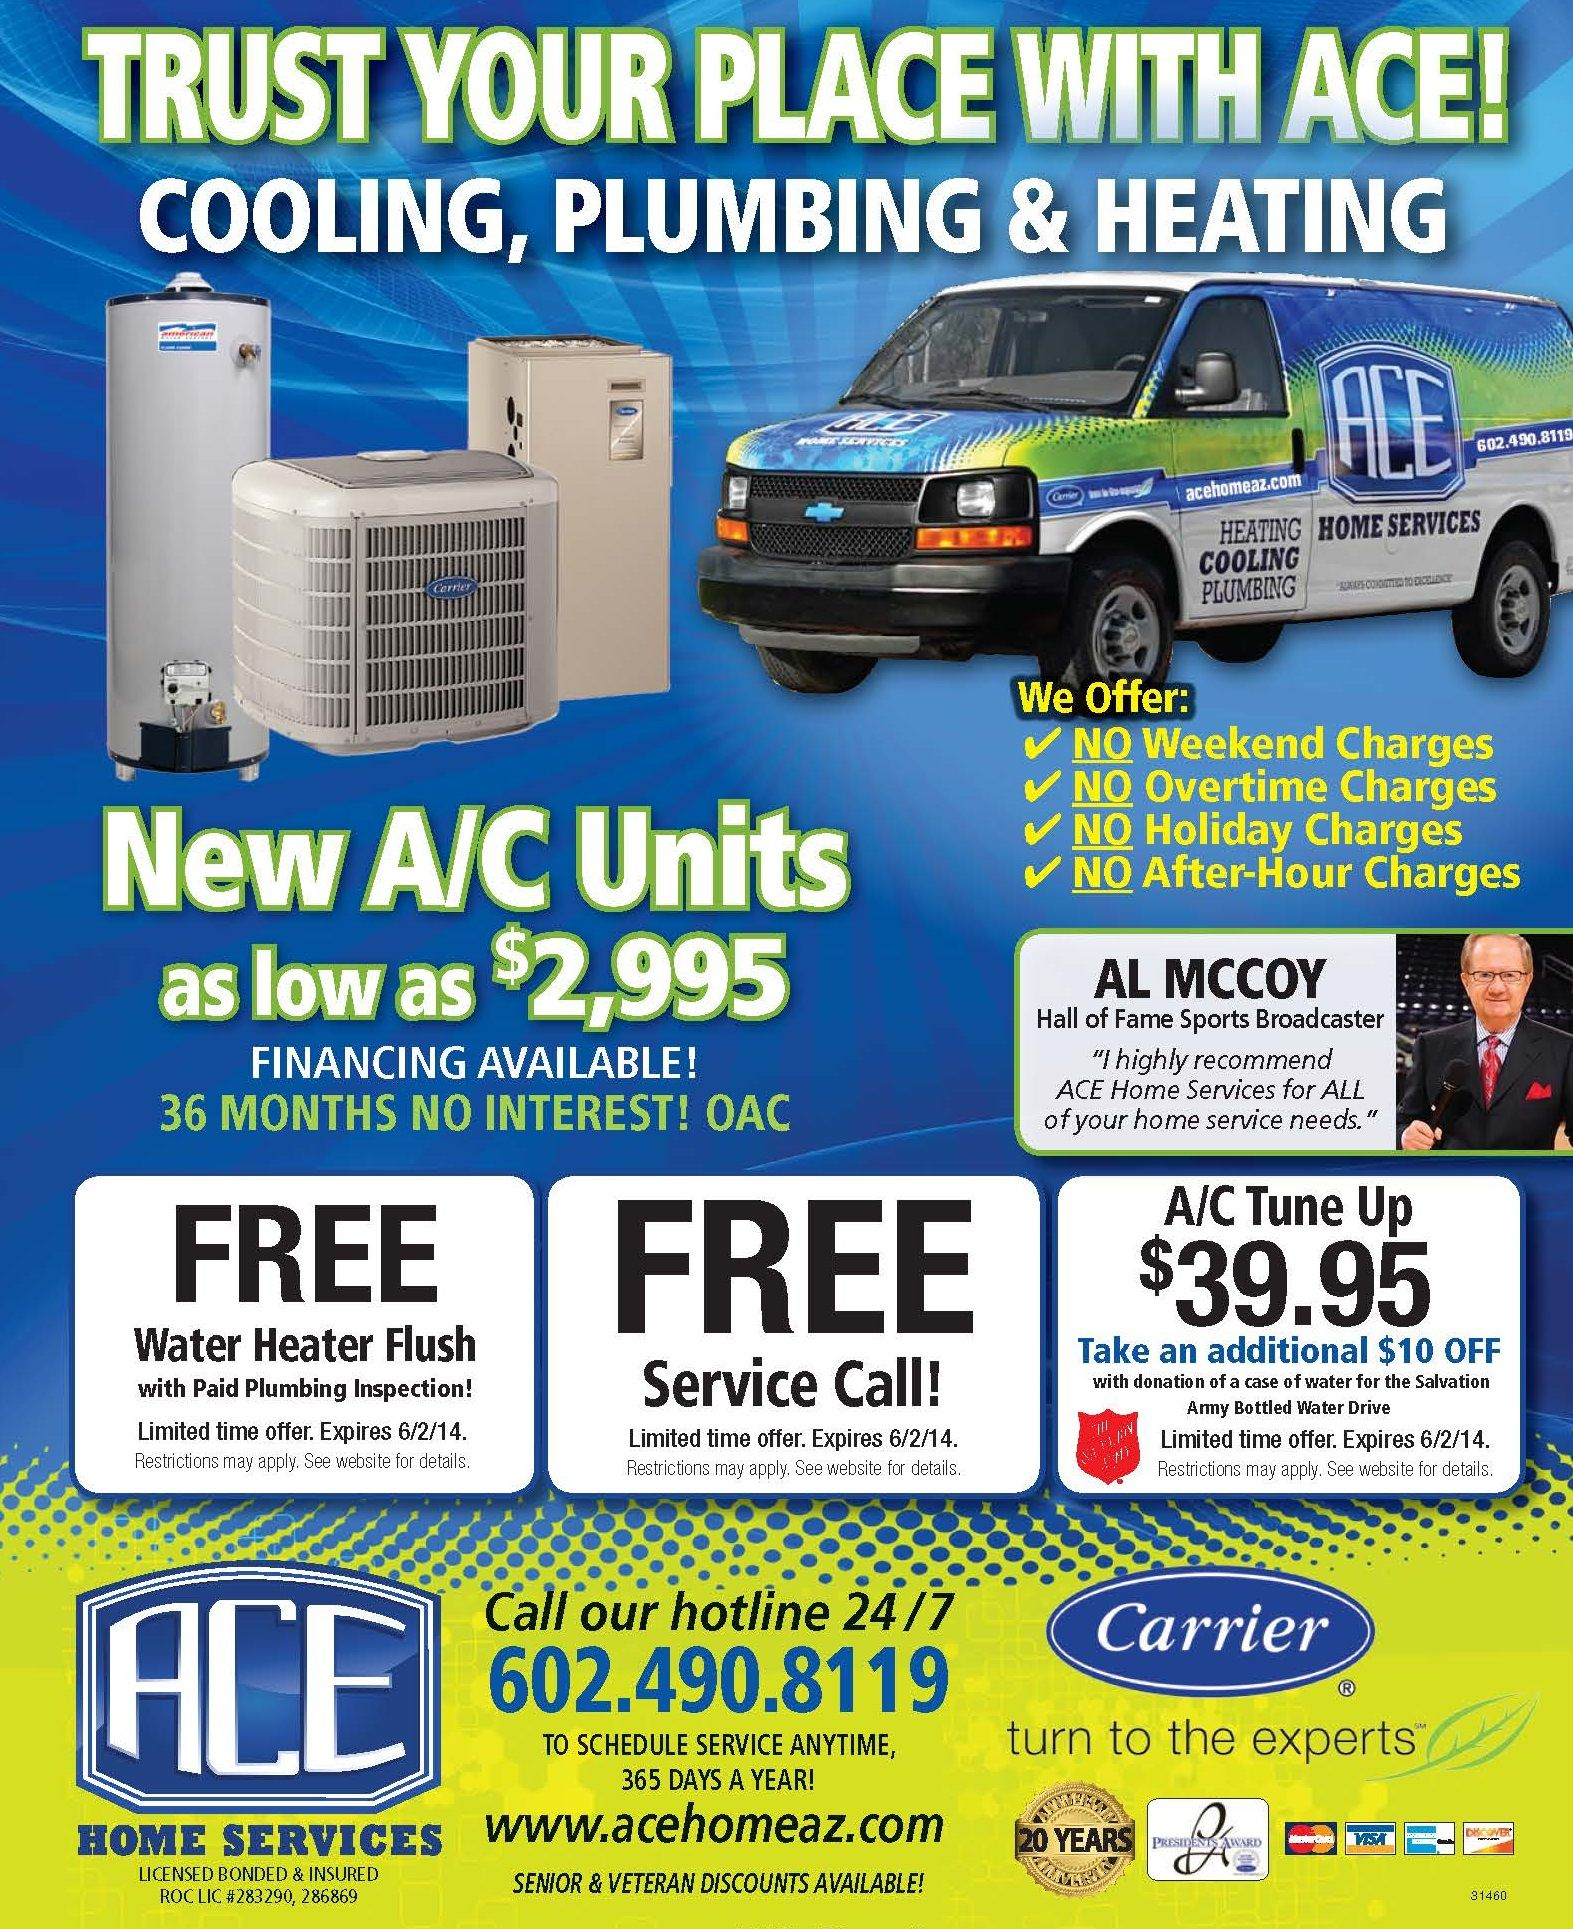 Pin by ACE HomeServices on A/C Air conditioning services